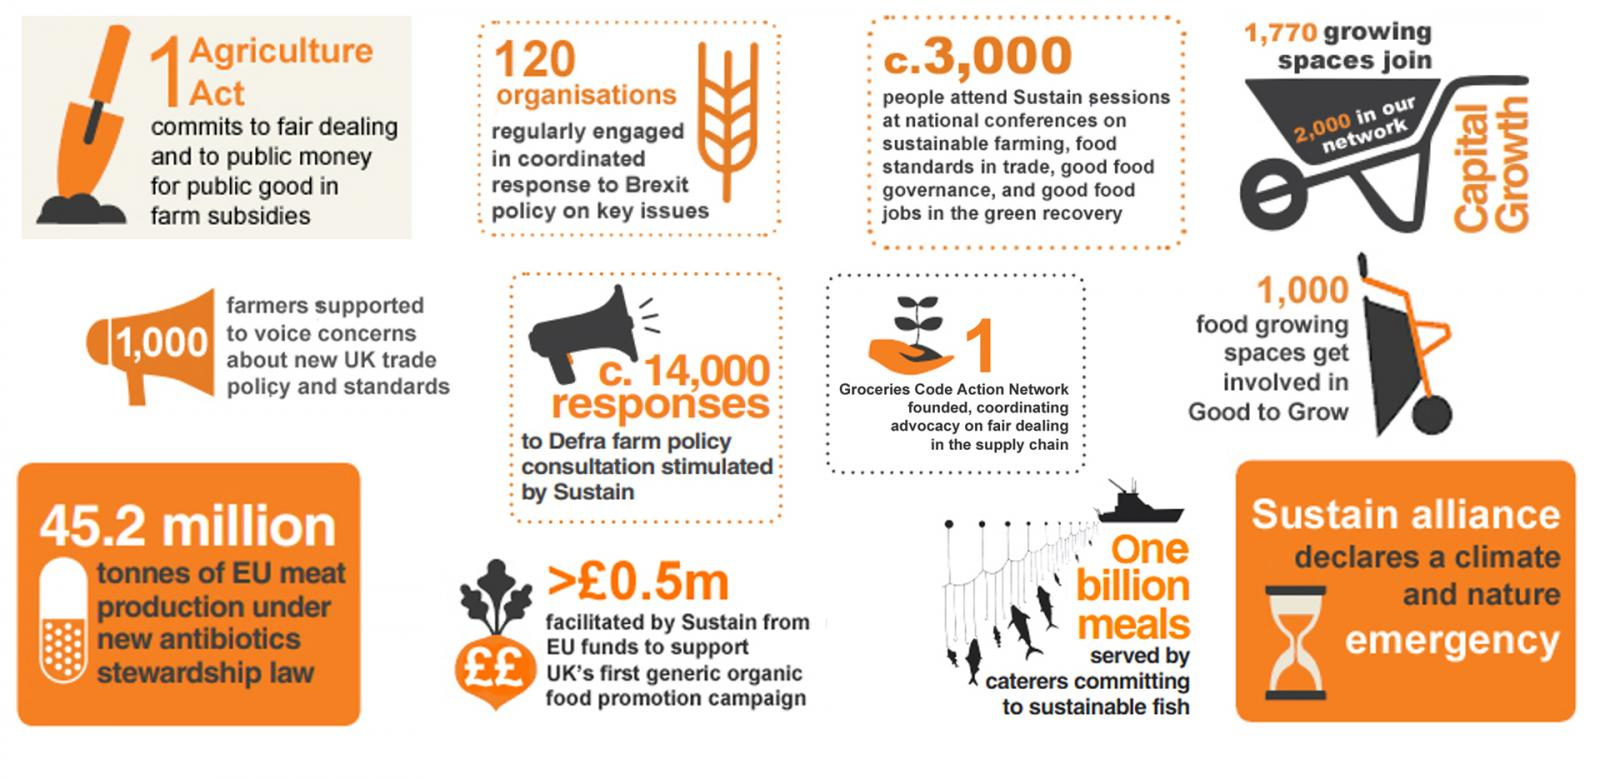 Highlights of progress on good food production over the past five years